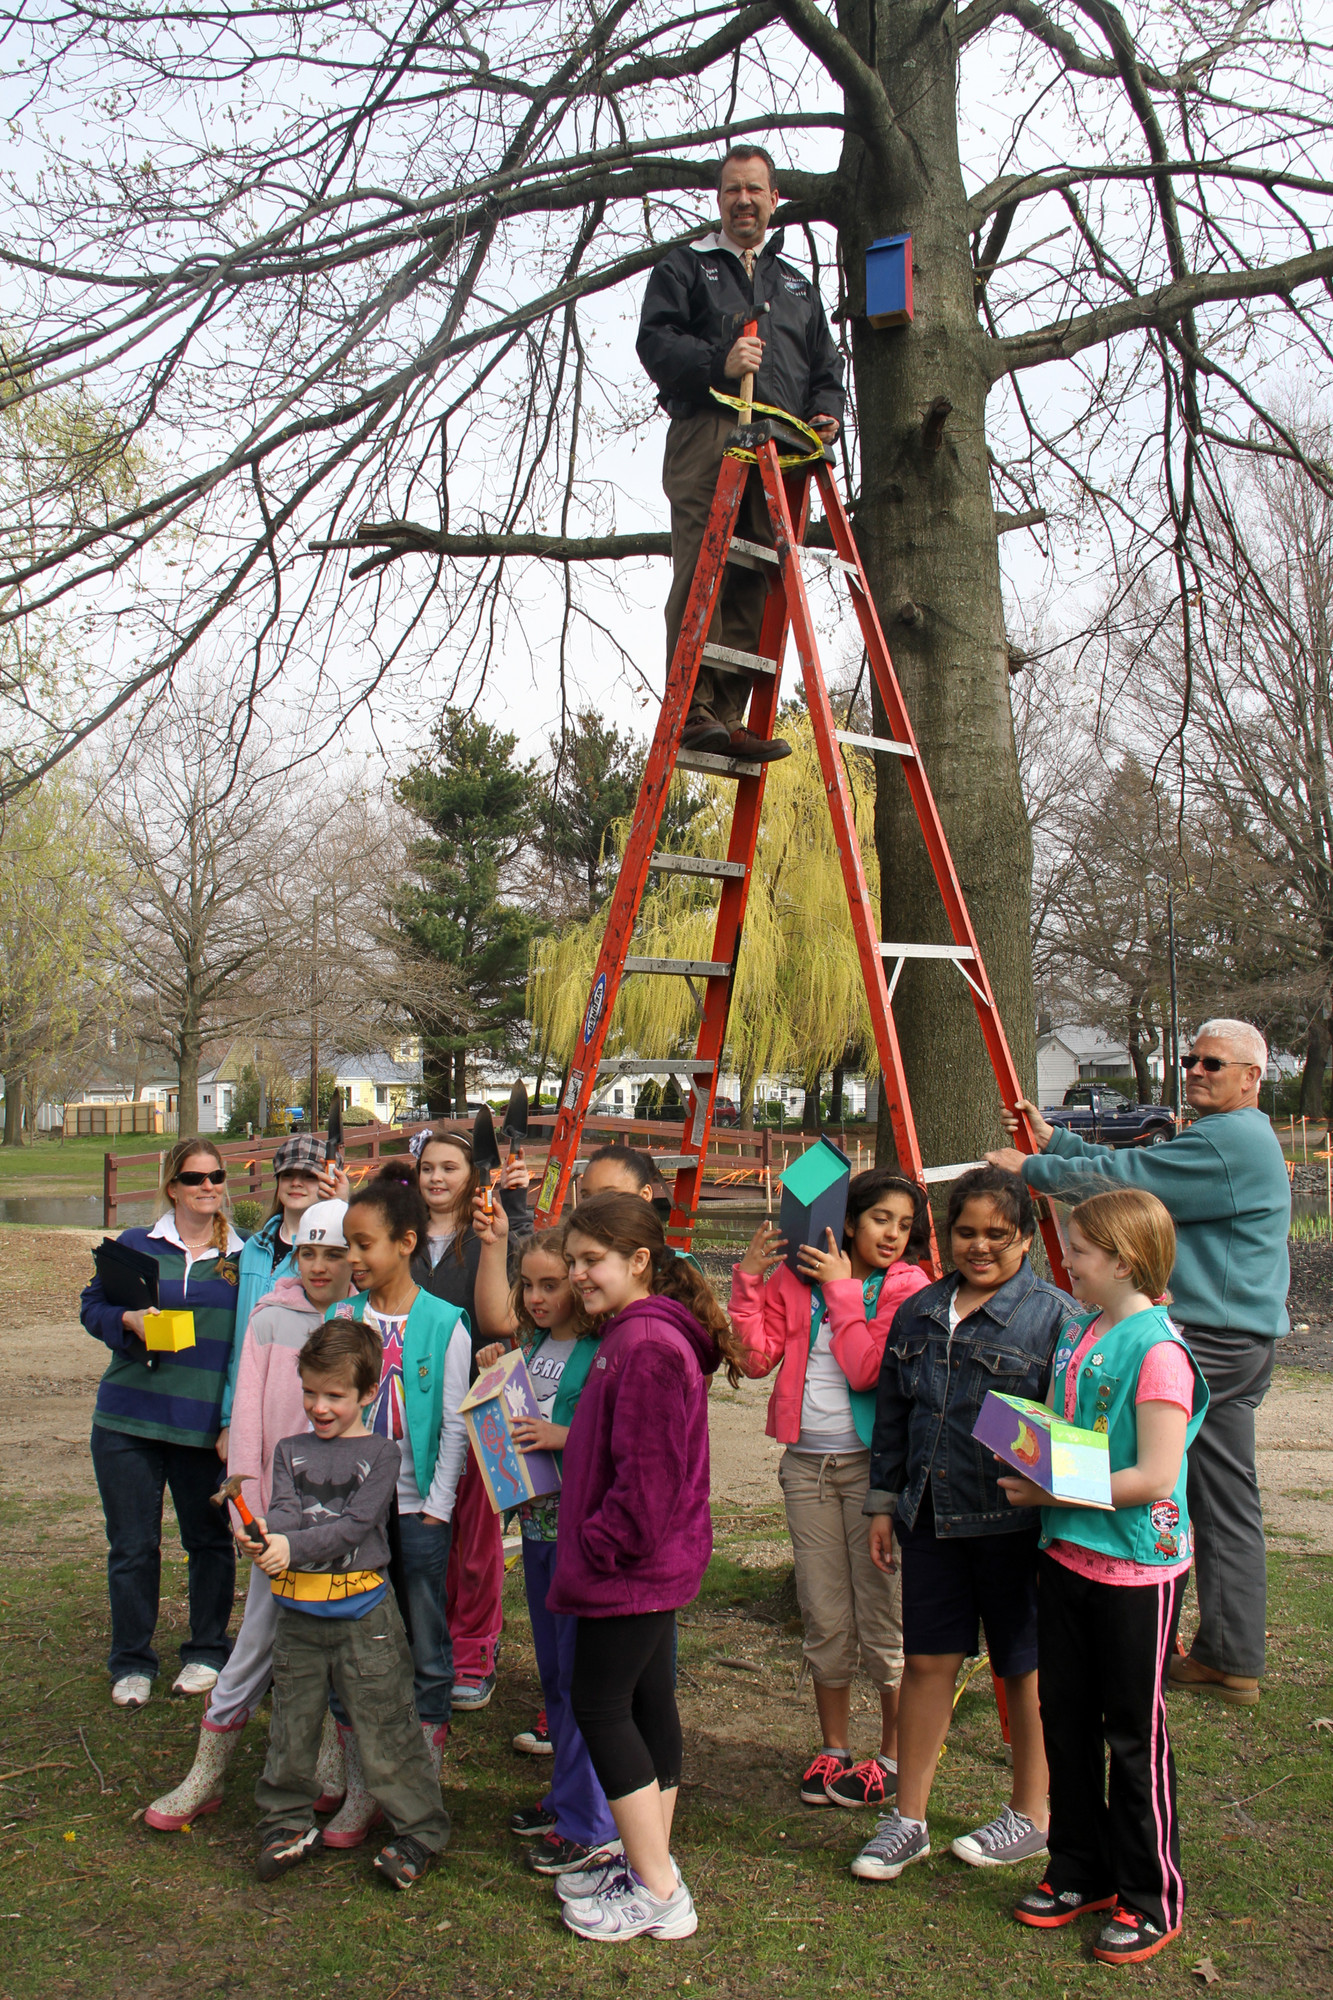 Mayor Ed Fare hung bat houses that Girl Scout Troop 2029 made for the park.